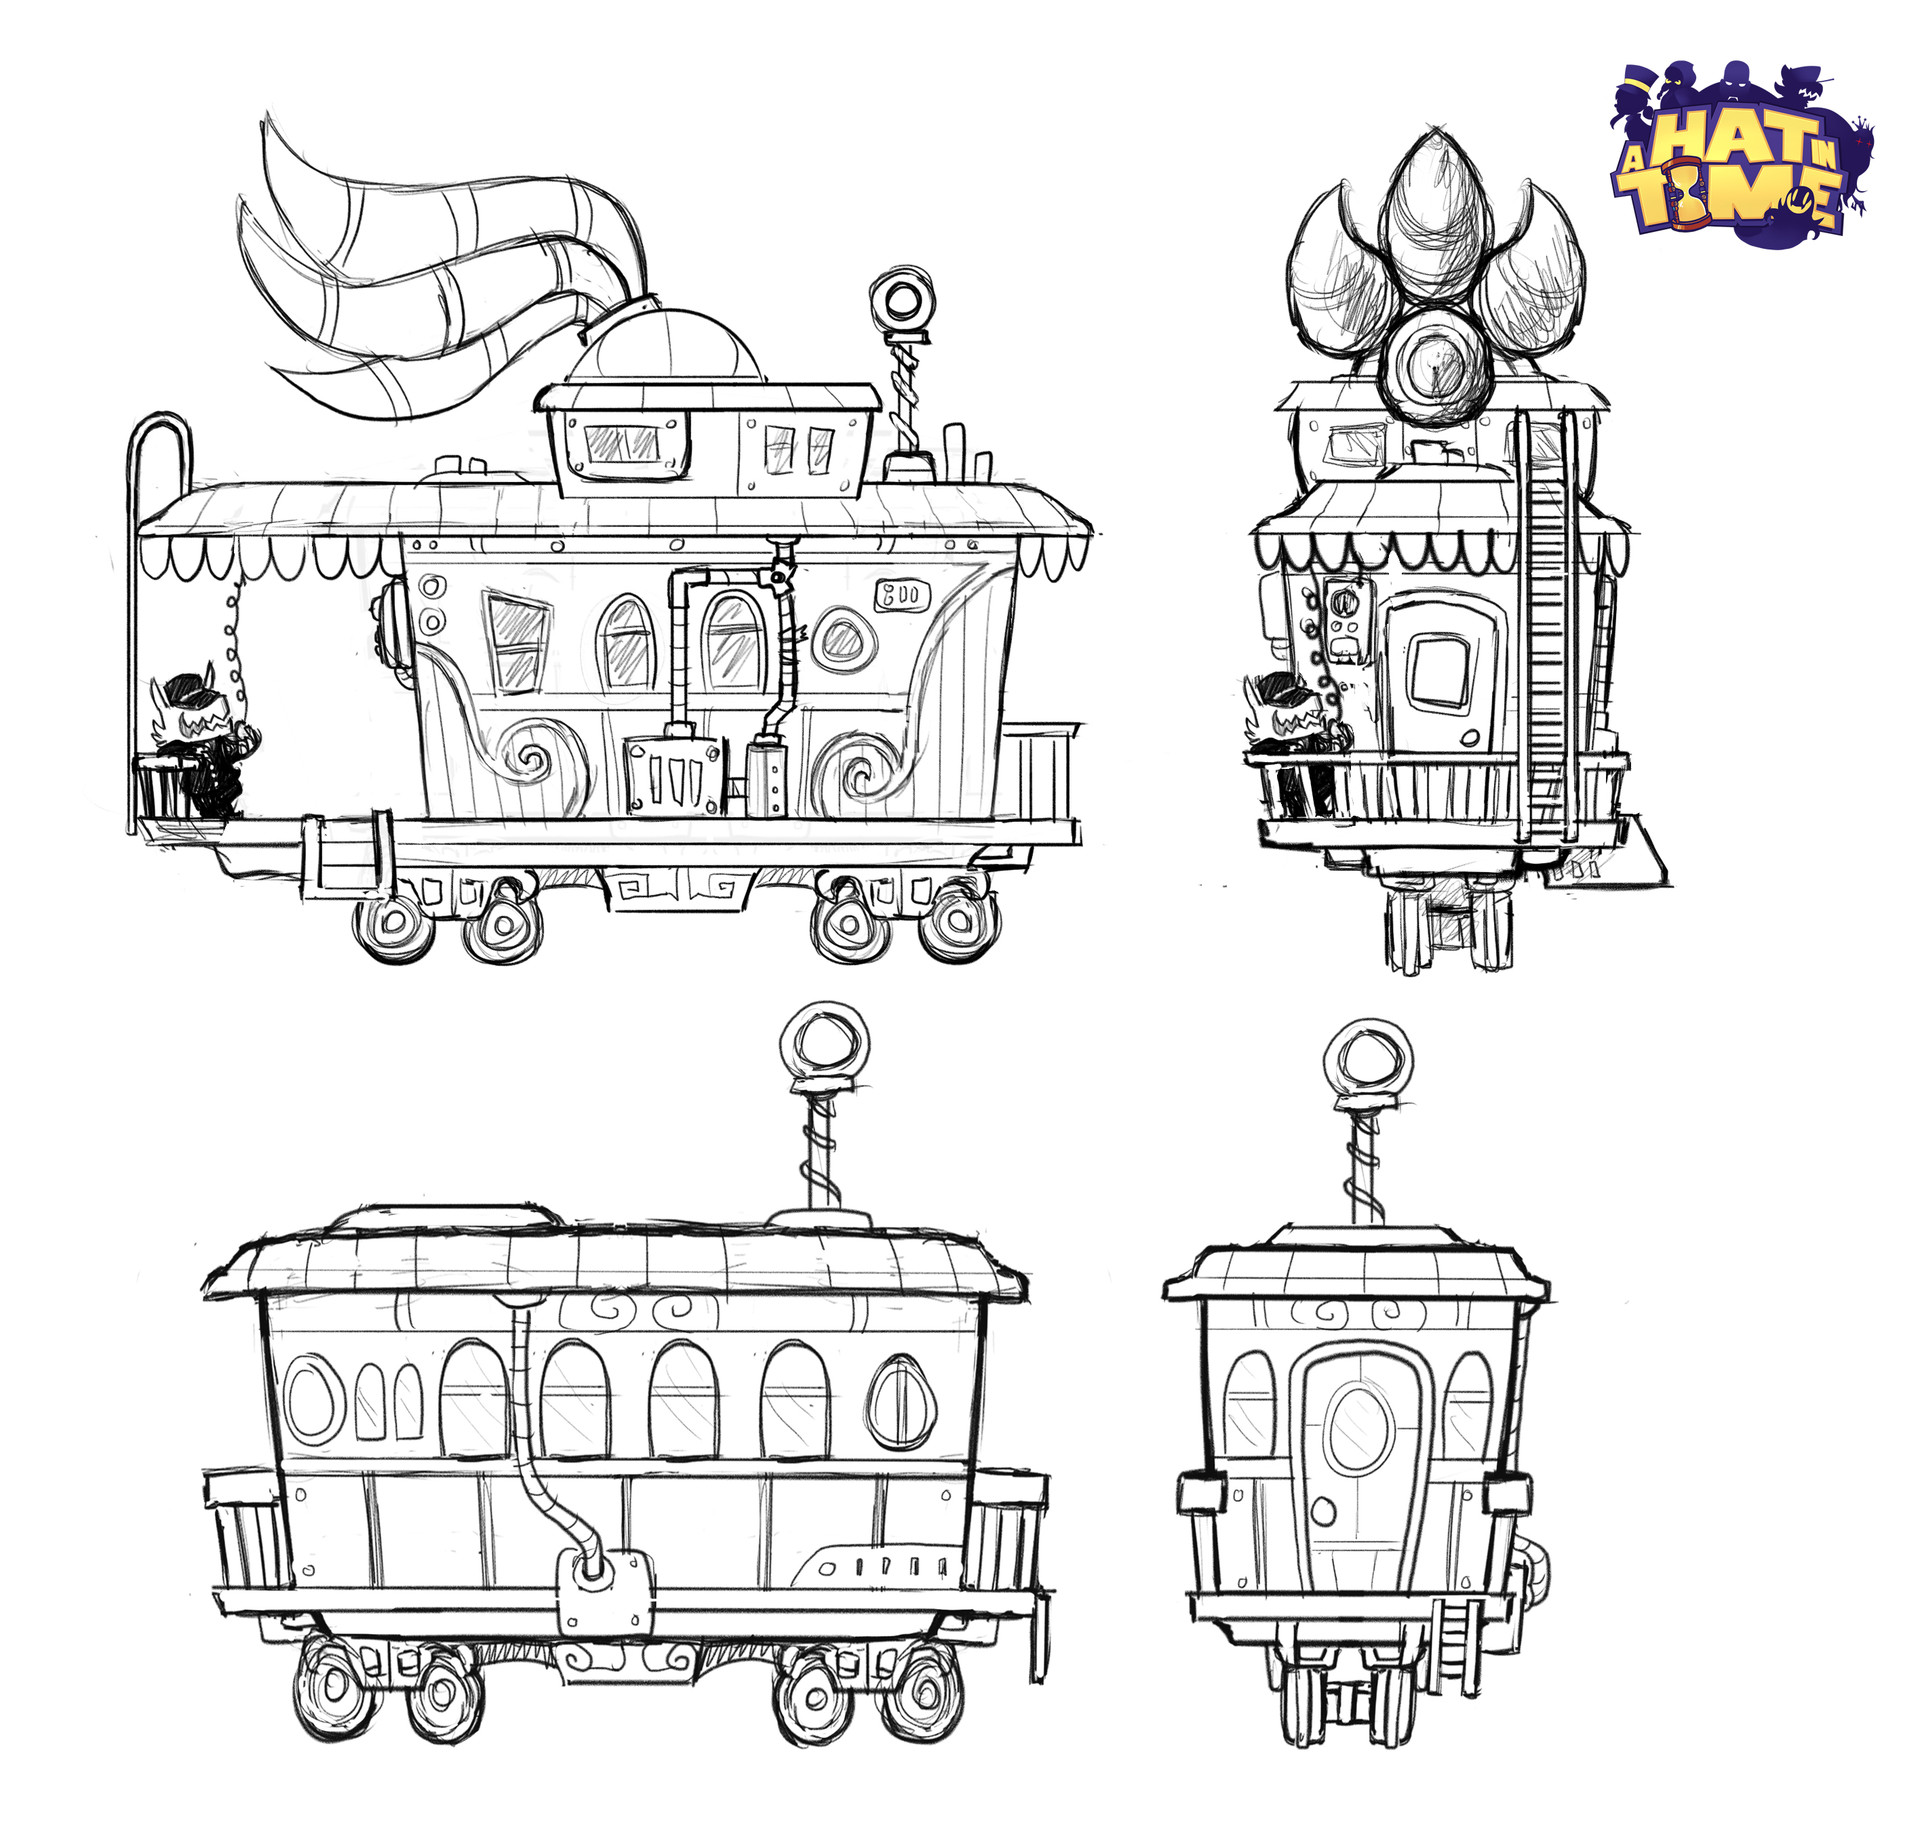 Luigi lucarelli train end and cabin concepts